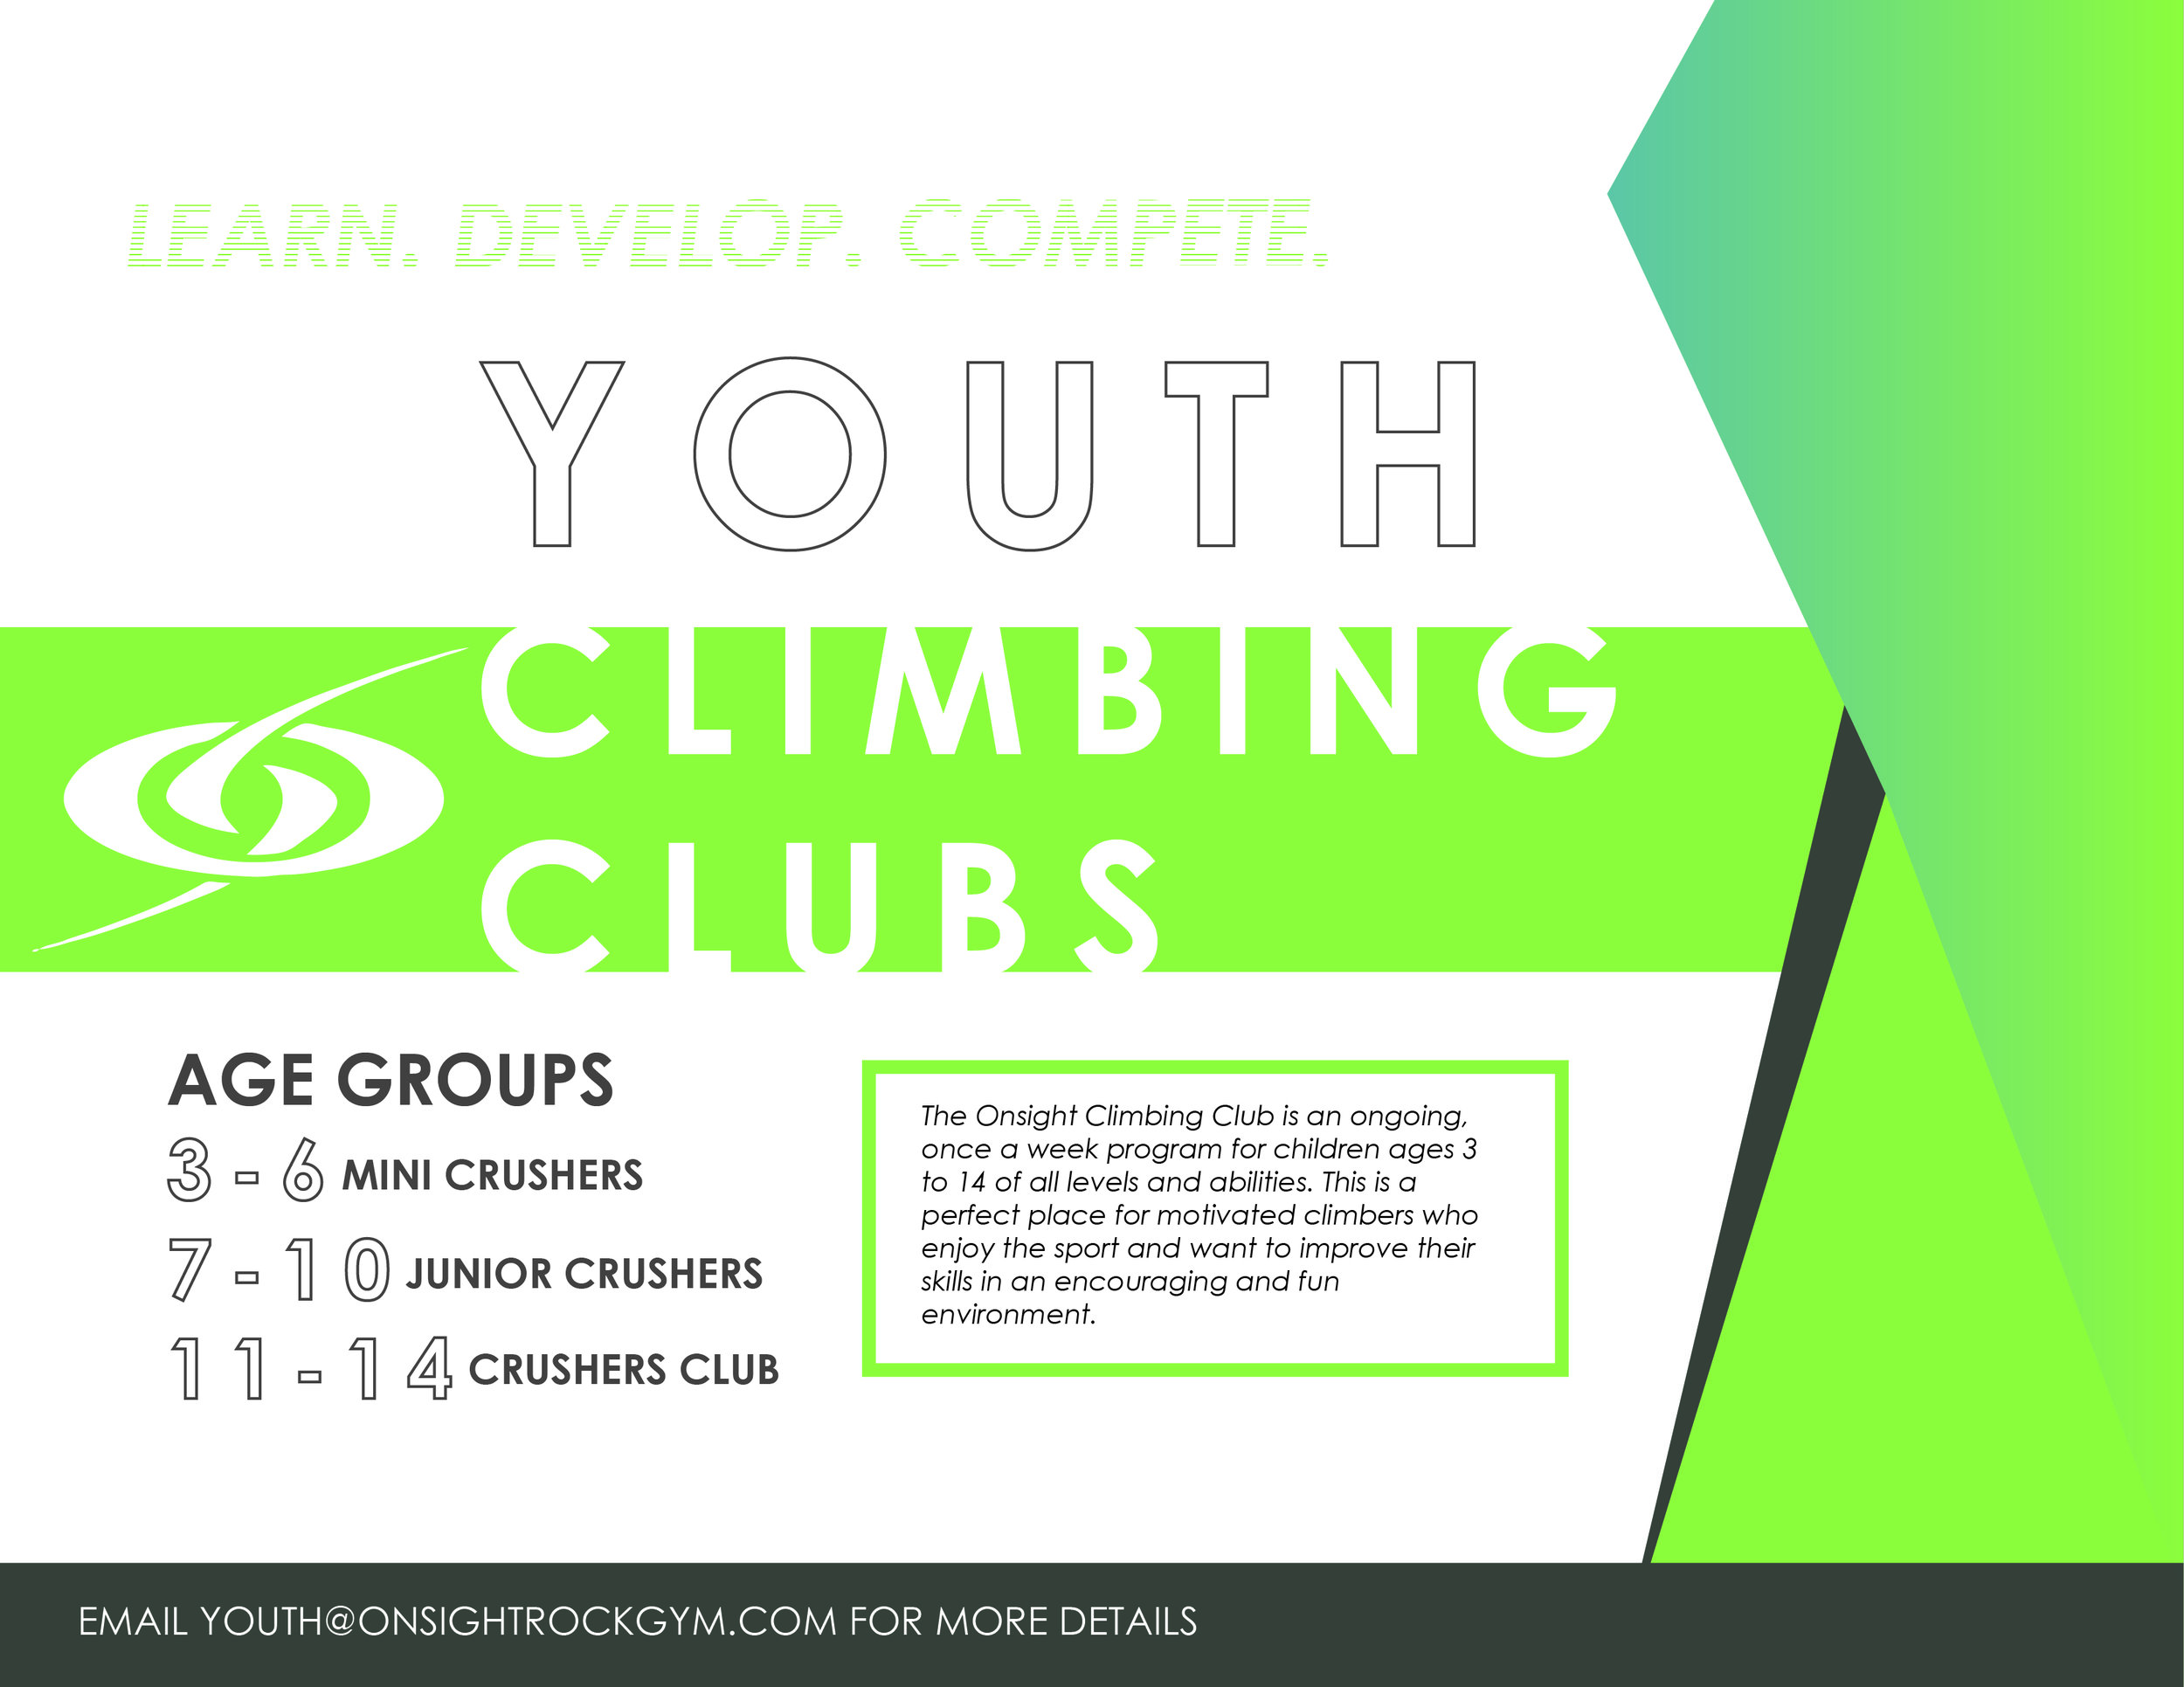 CLIMBING_CLUBS_GRAPHIC_HORIZONTAL.jpg